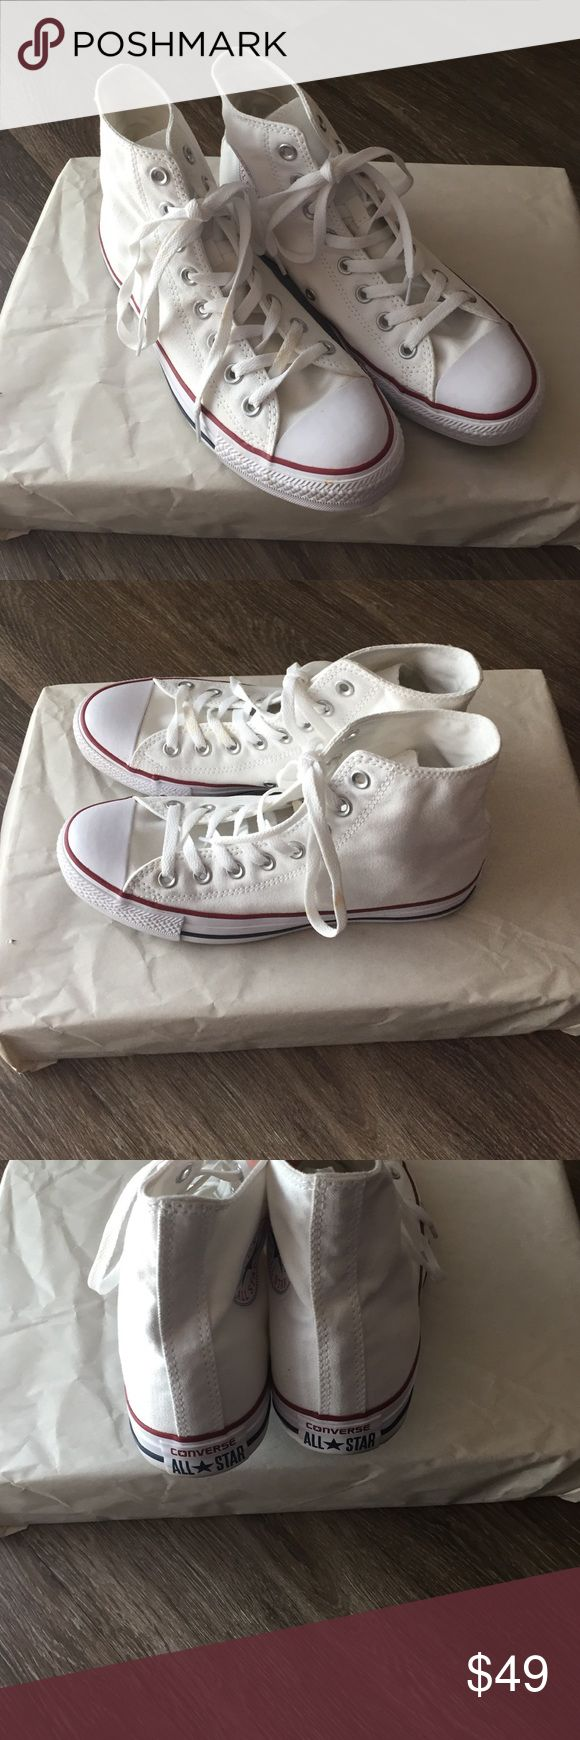 Converse Classic High Top Sneakers 9 Converse Classic High Top Sneakers.                    Size women's 9. Gently used a few times excellent condition. Shoelaces have some marks they may need washed. Converse Shoes Sneakers